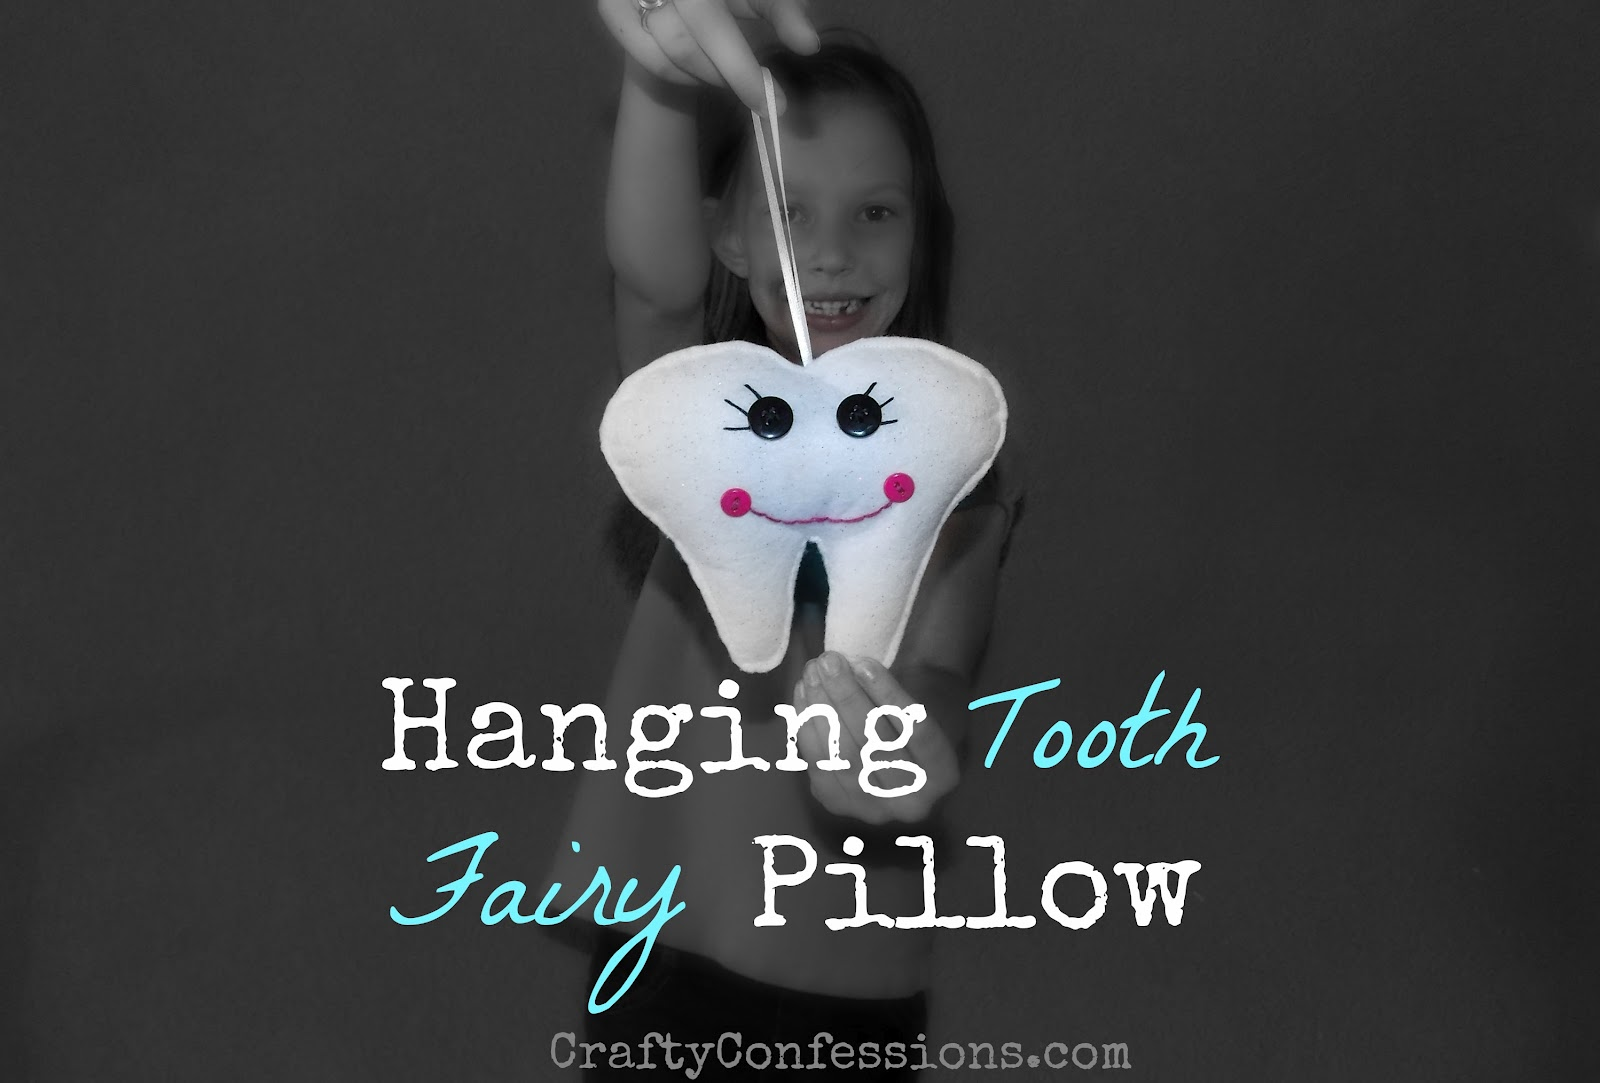 Crafty Confessions: Hanging Tooth Fairy Pillow Tutorial